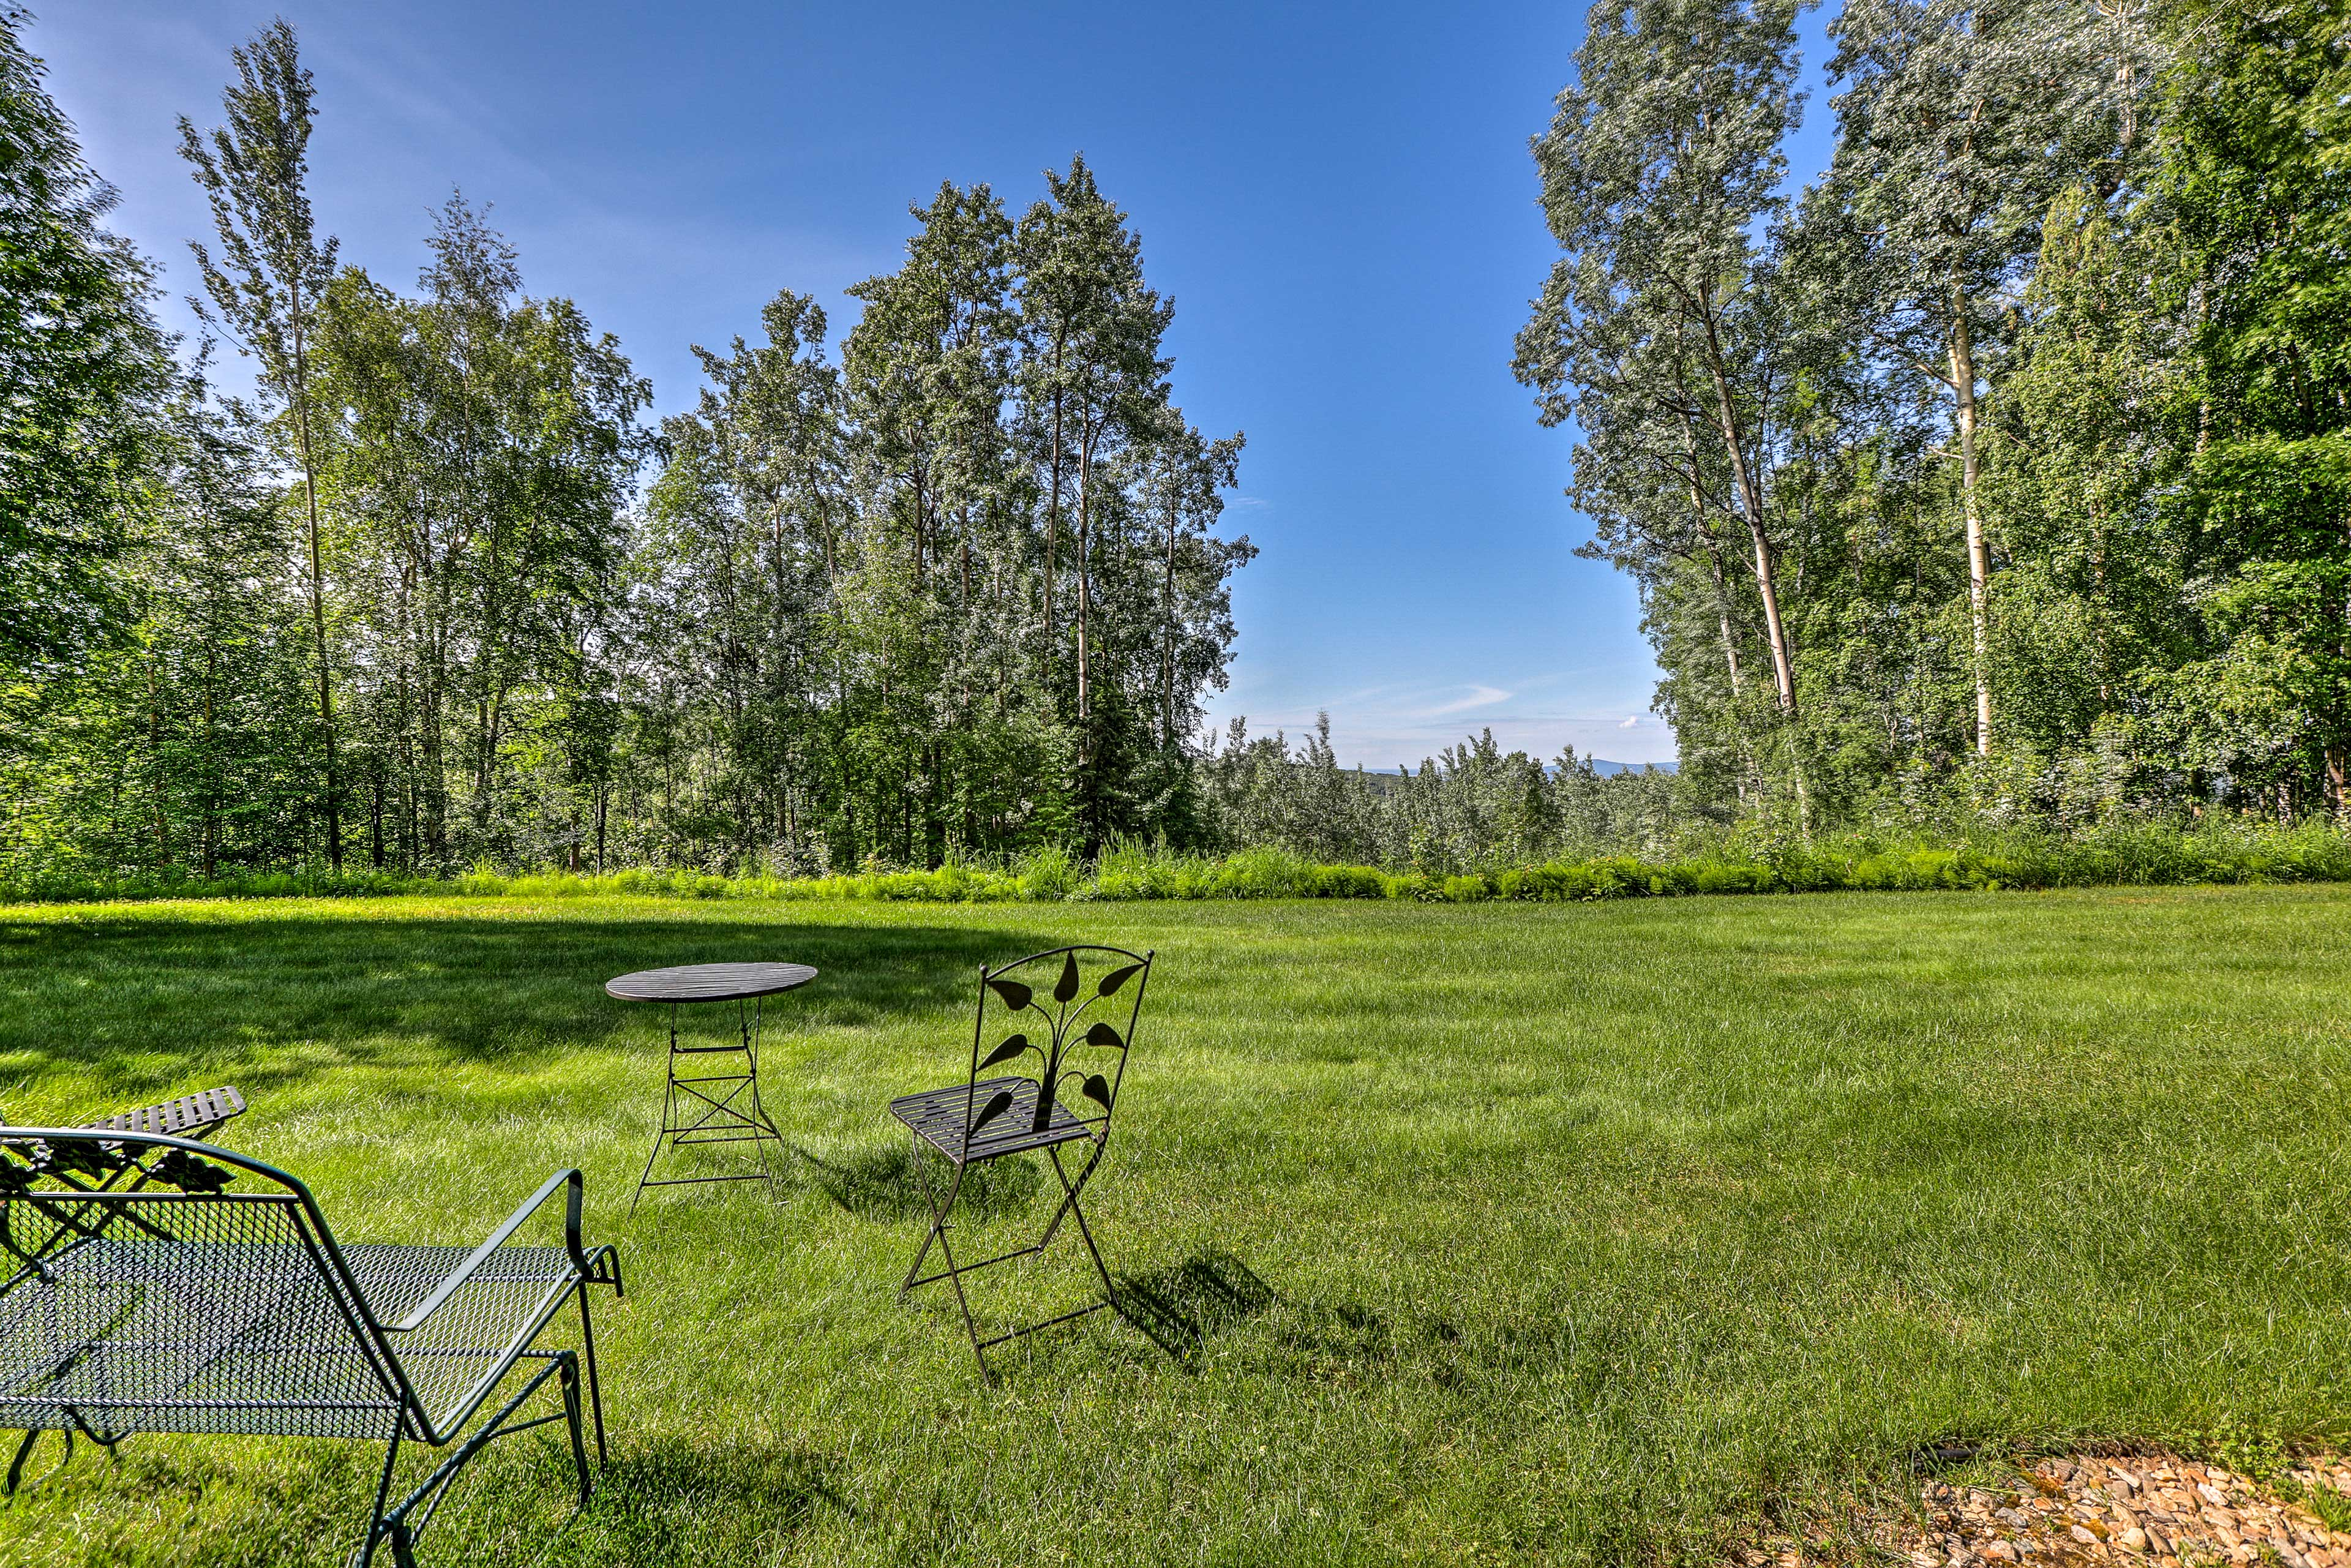 'Lizzie's Nest' is filled with charm and character in the heart of Fairbanks.